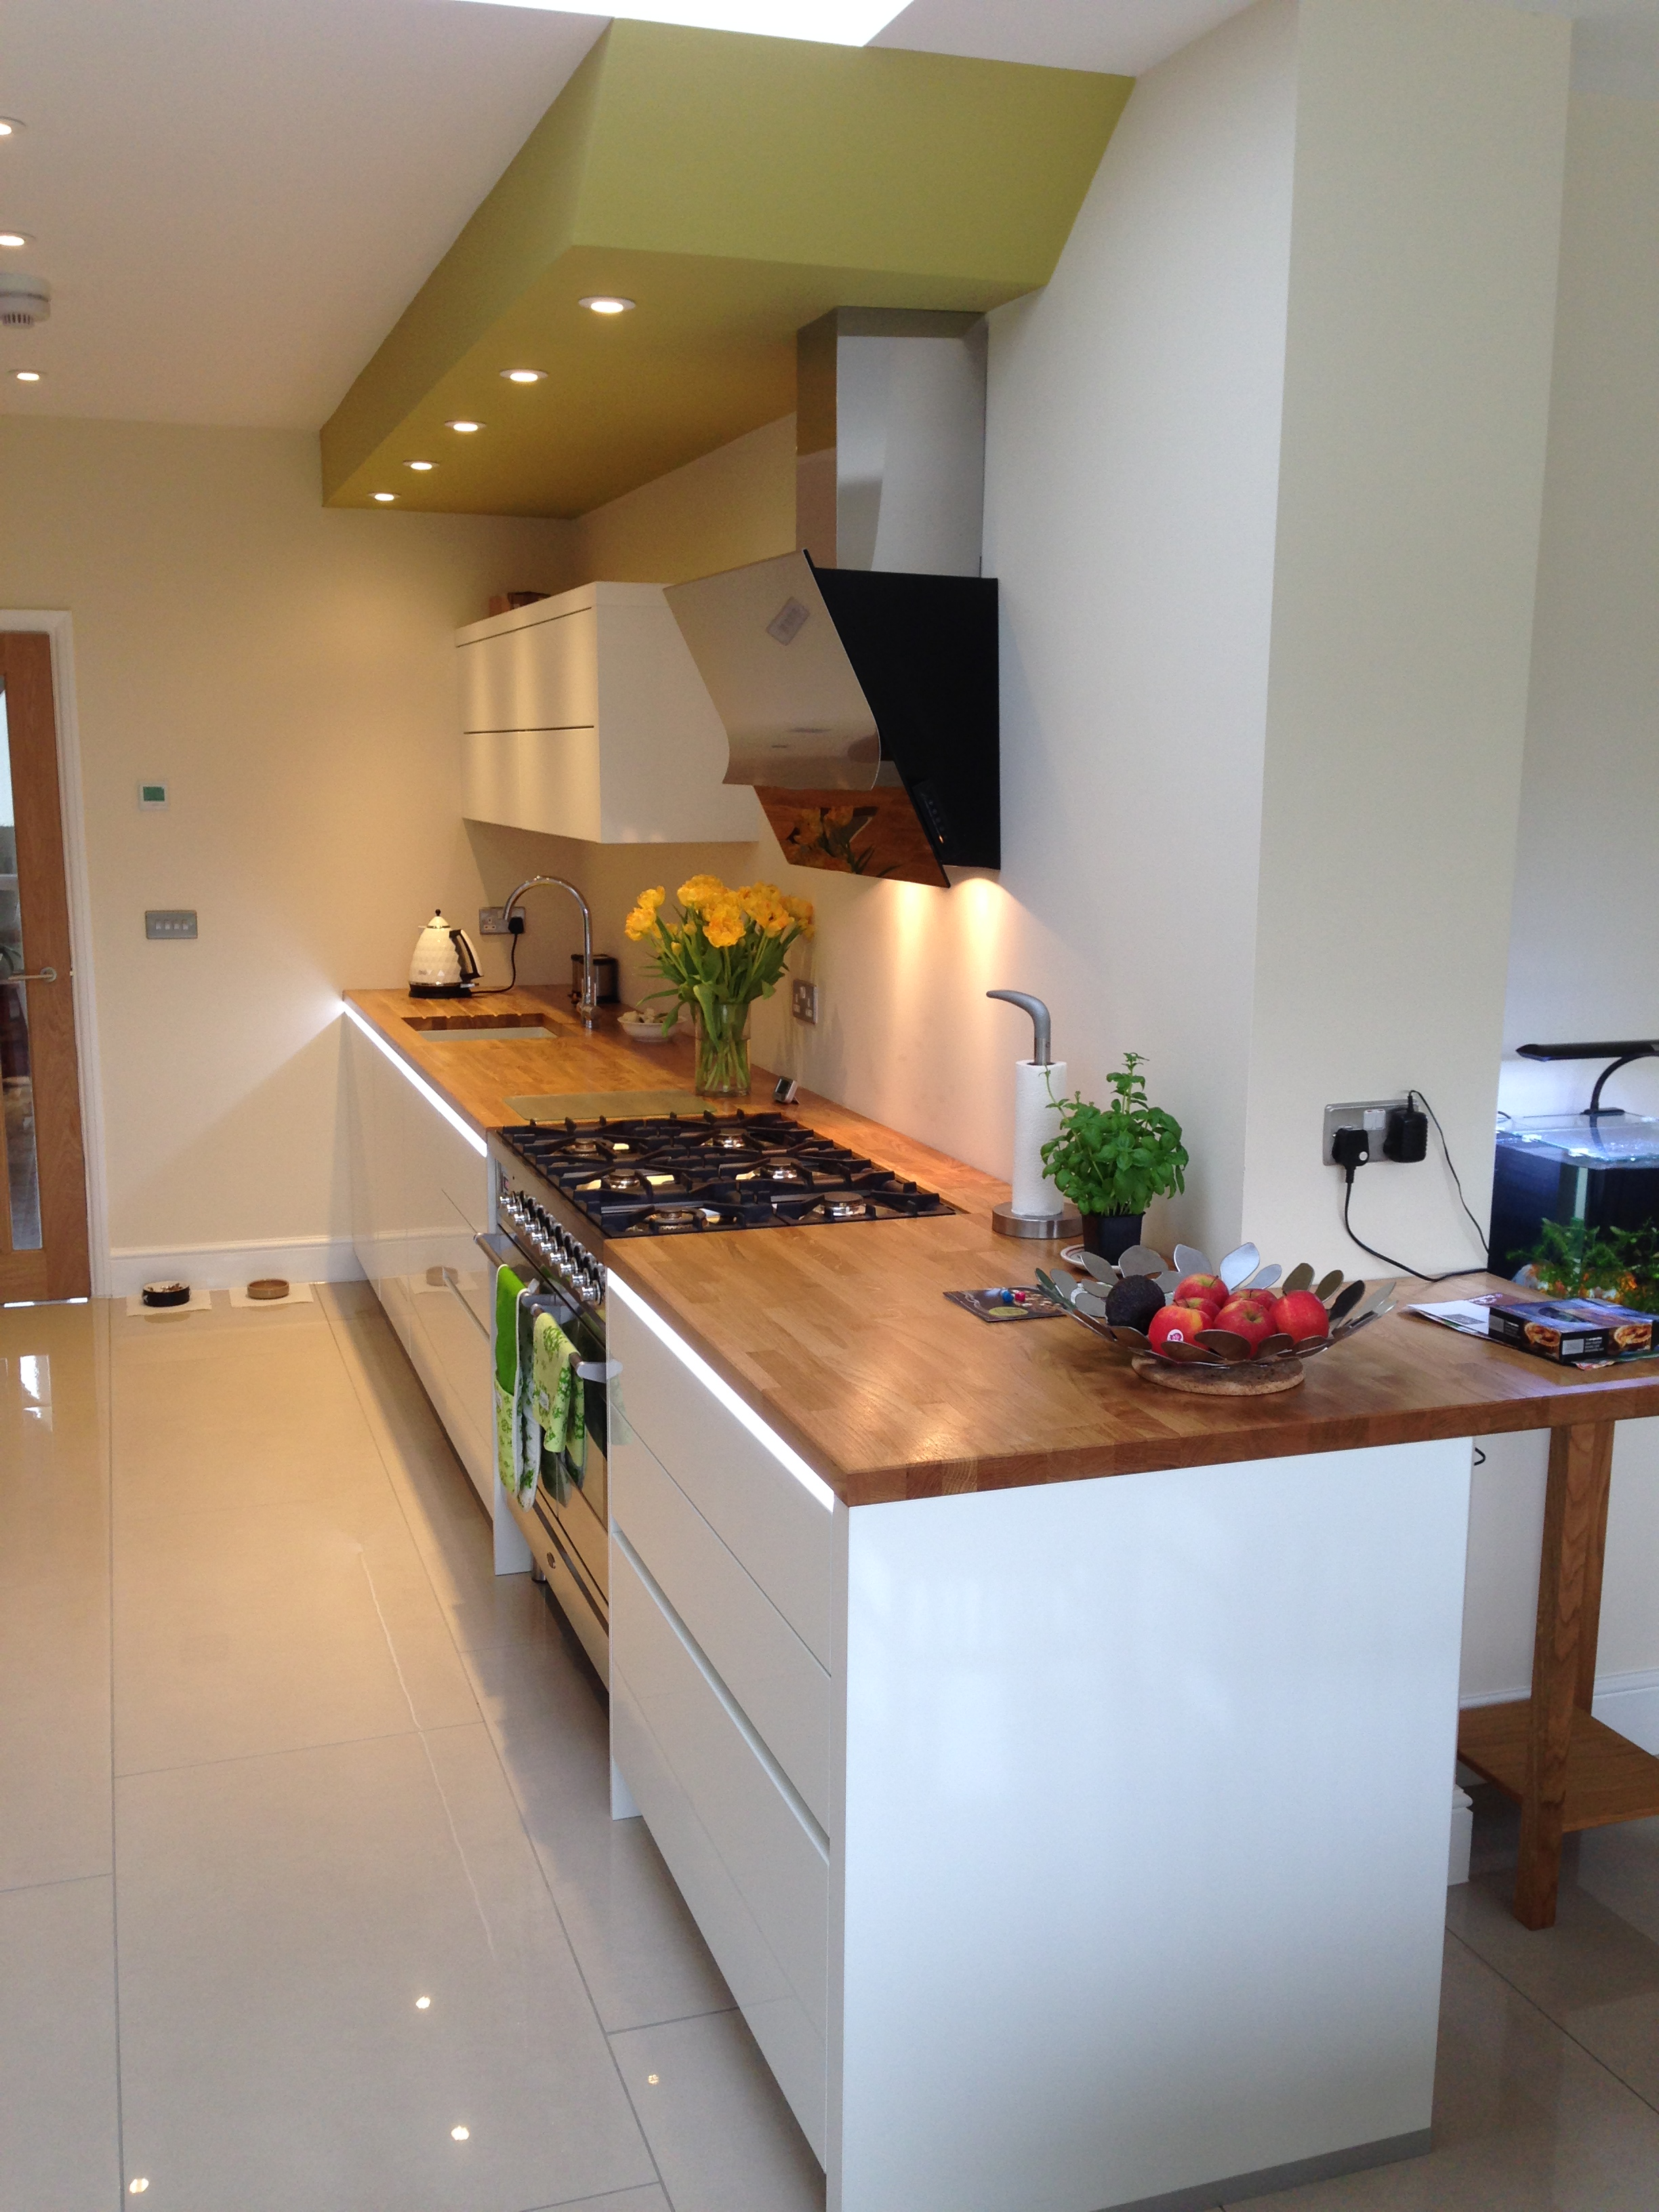 Great combination of natural oak worktops and gloss white